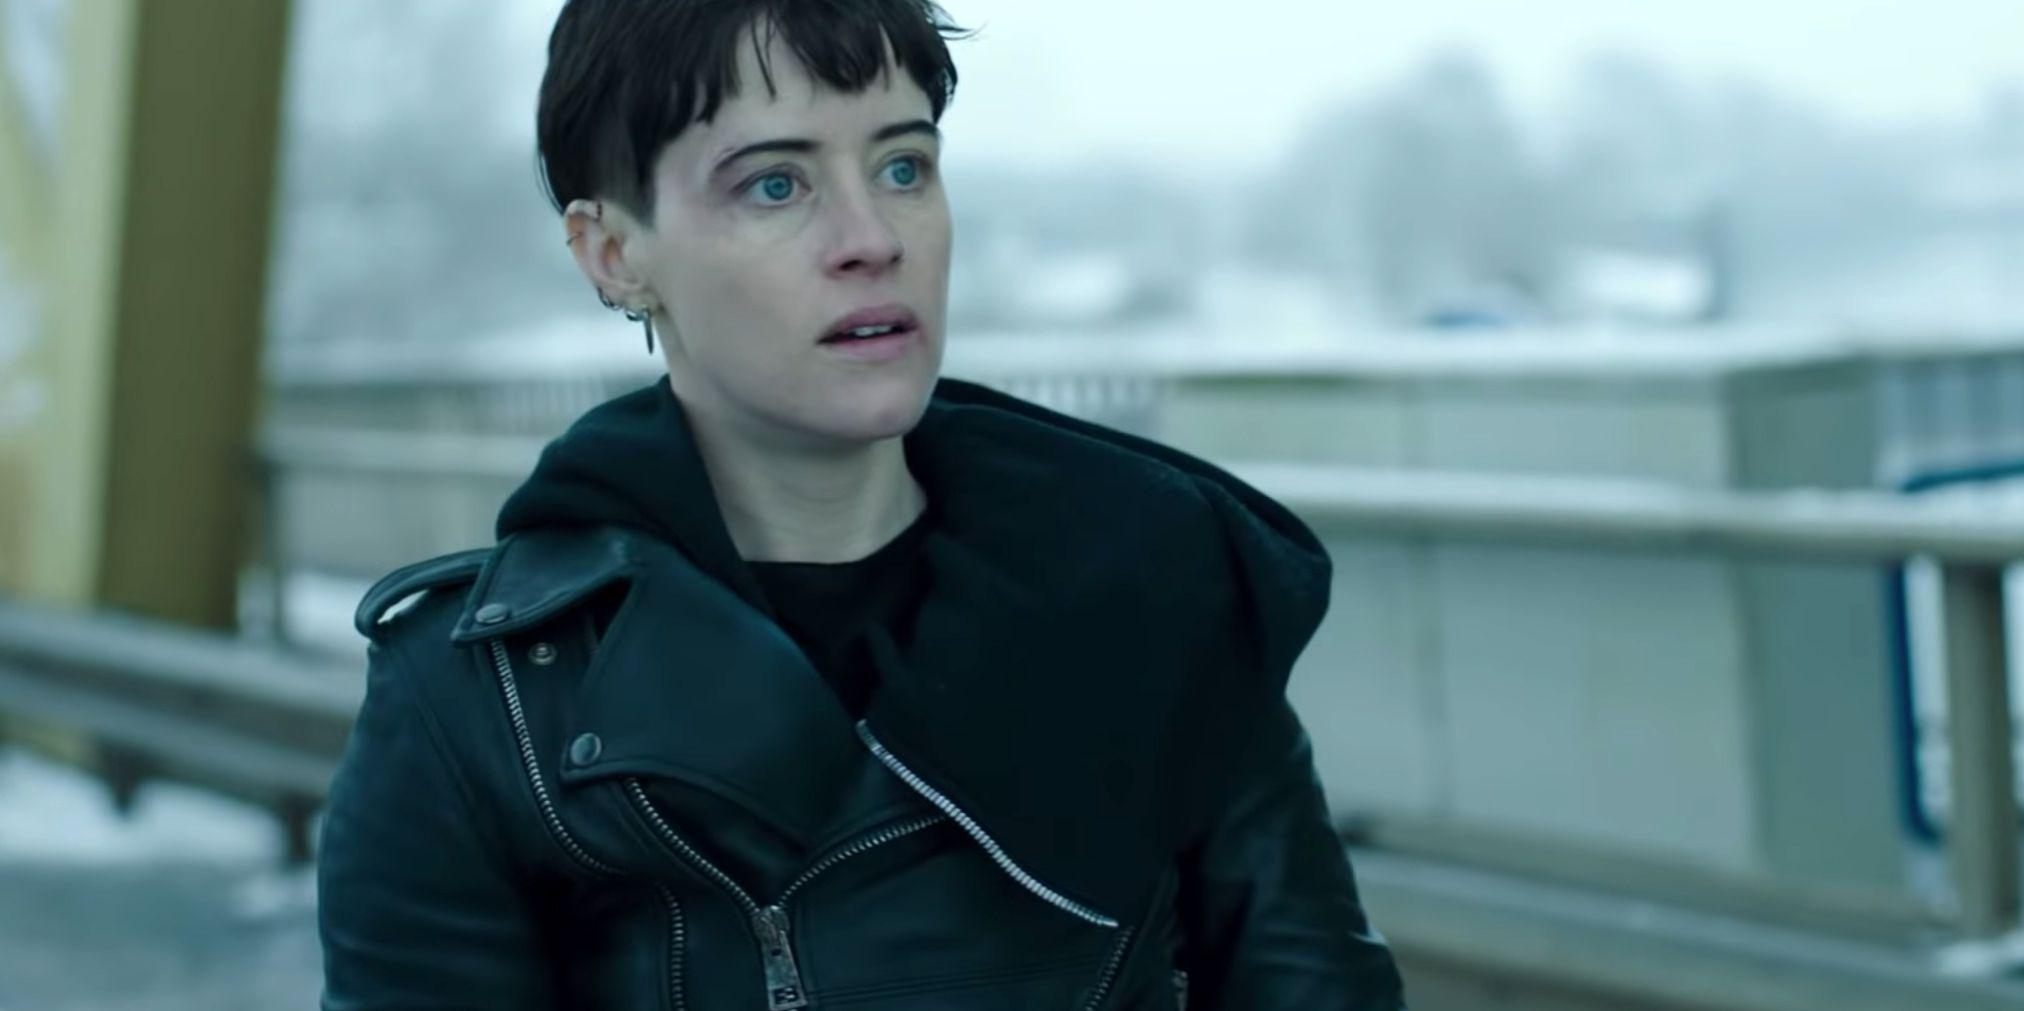 'The Girl in the Spider's Web' entangles viewers with soft reboot